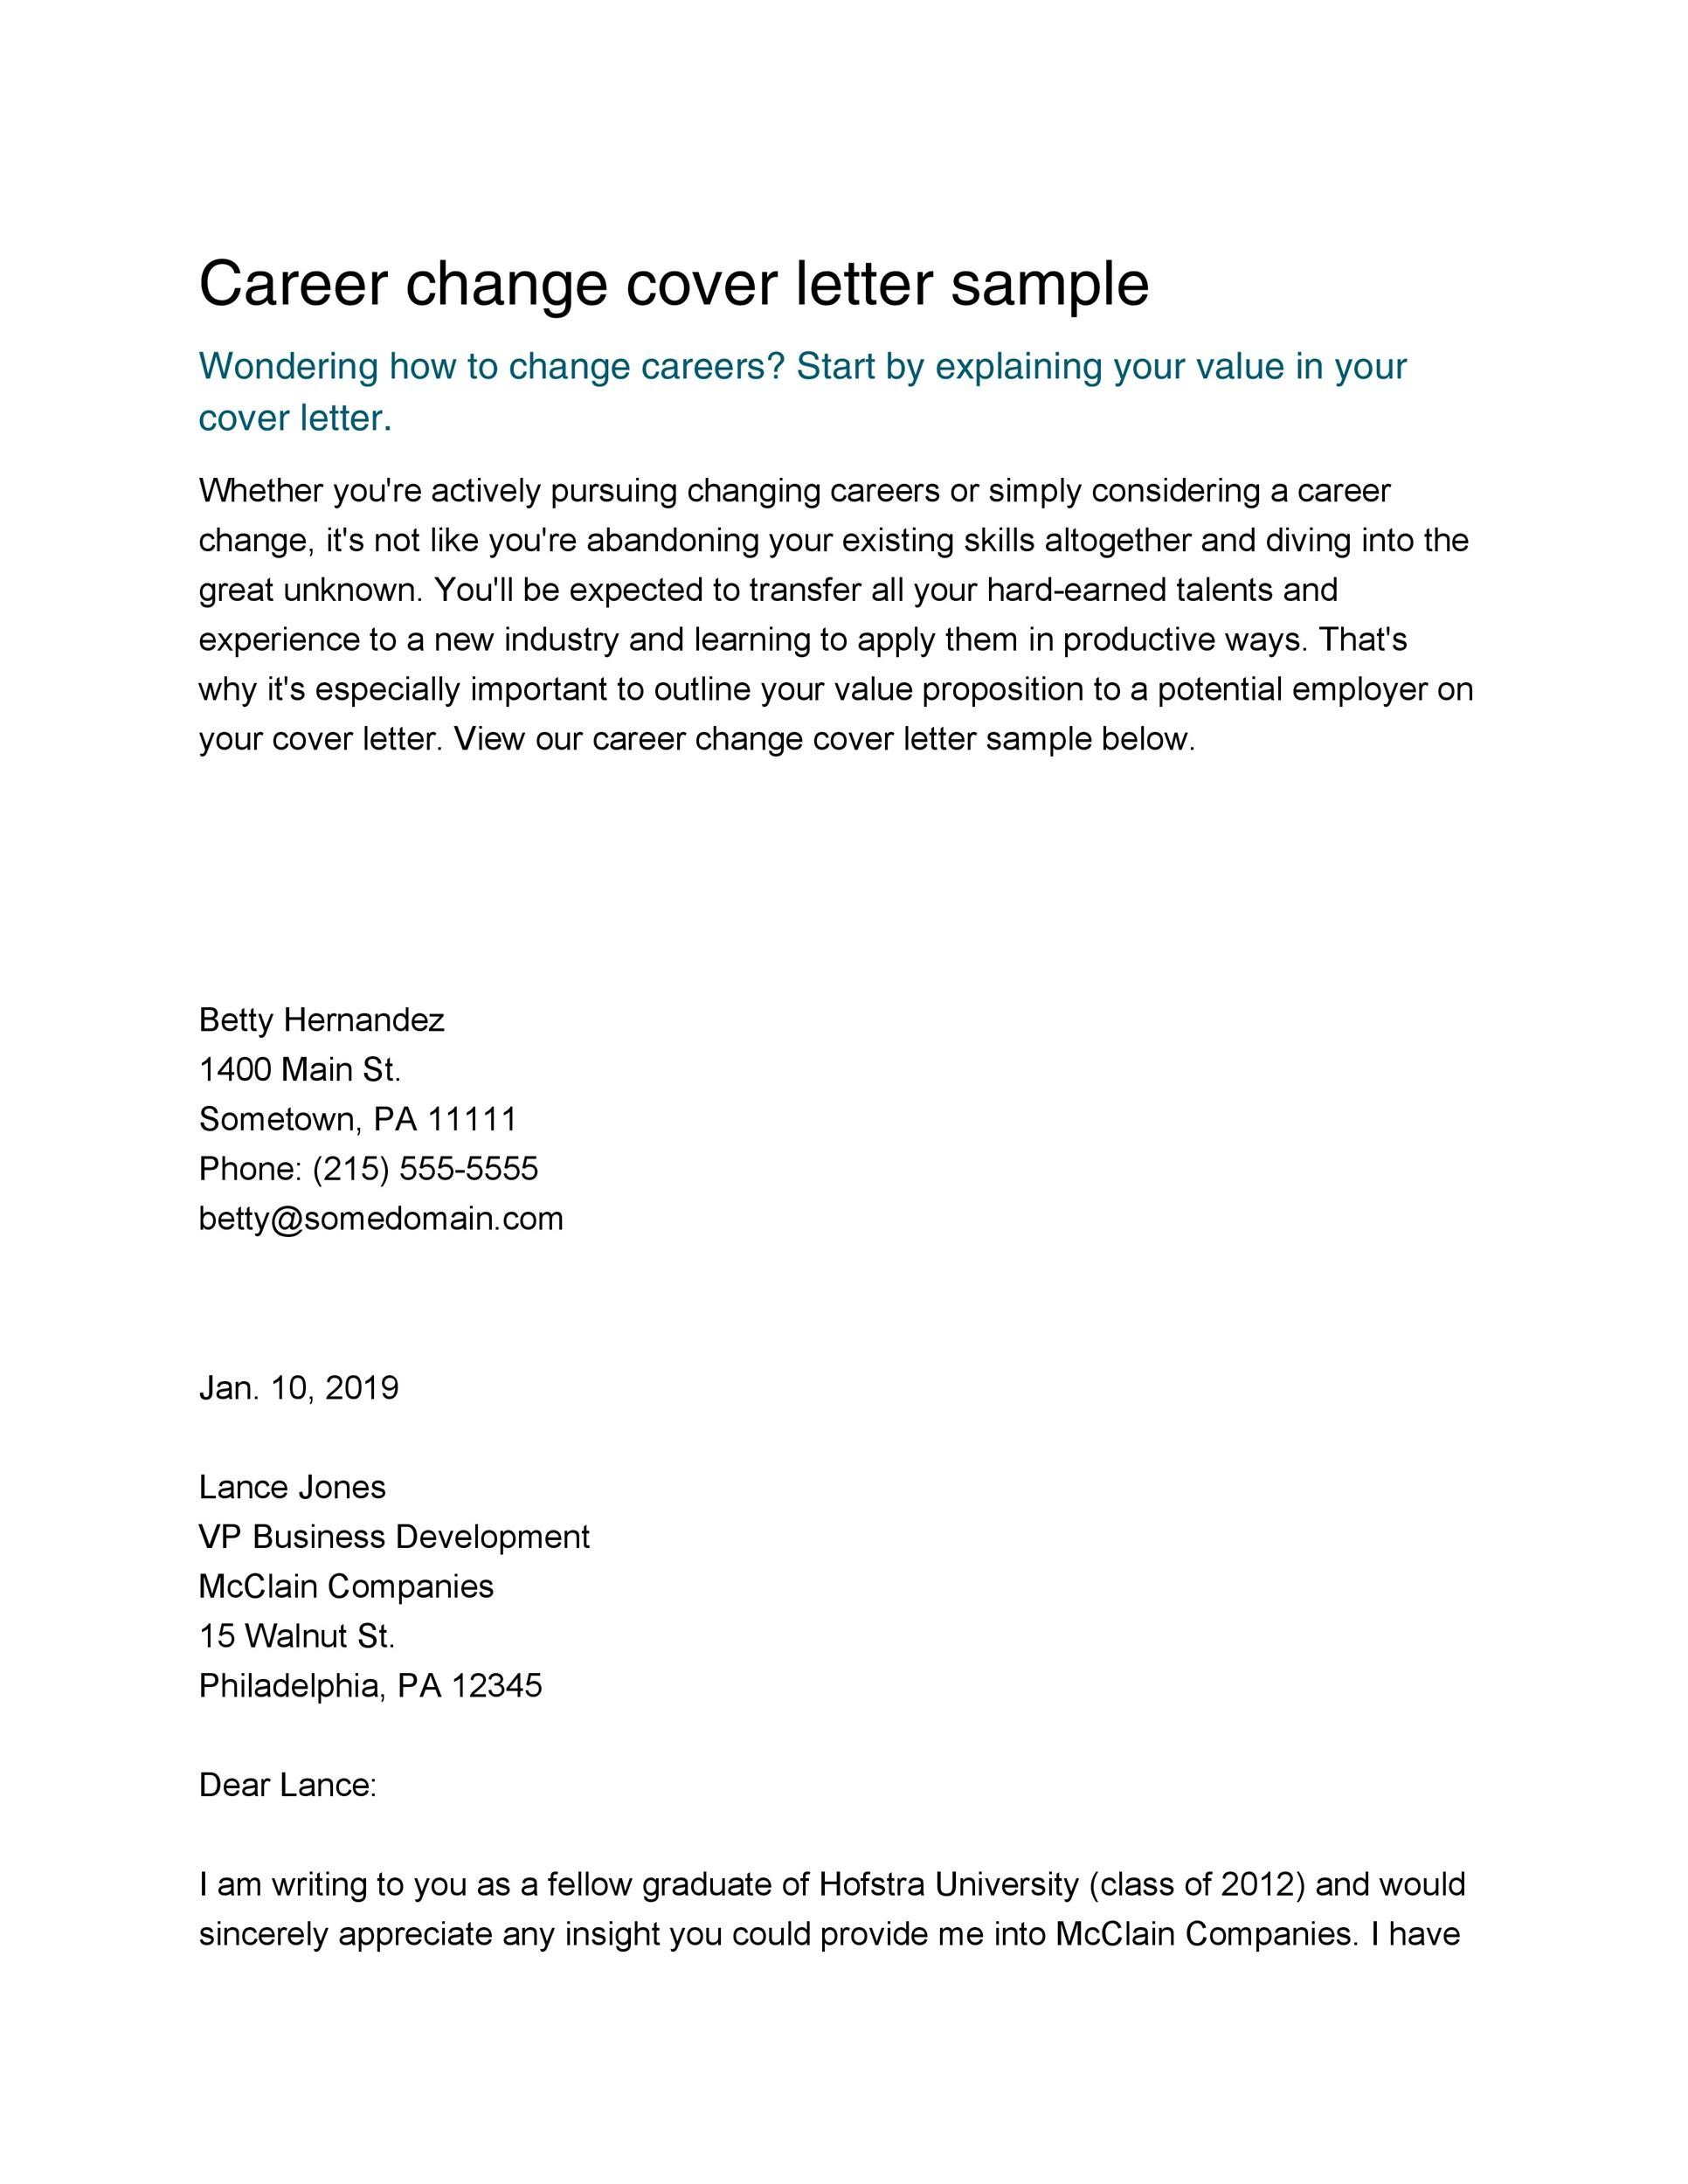 Free career change cover letter 36